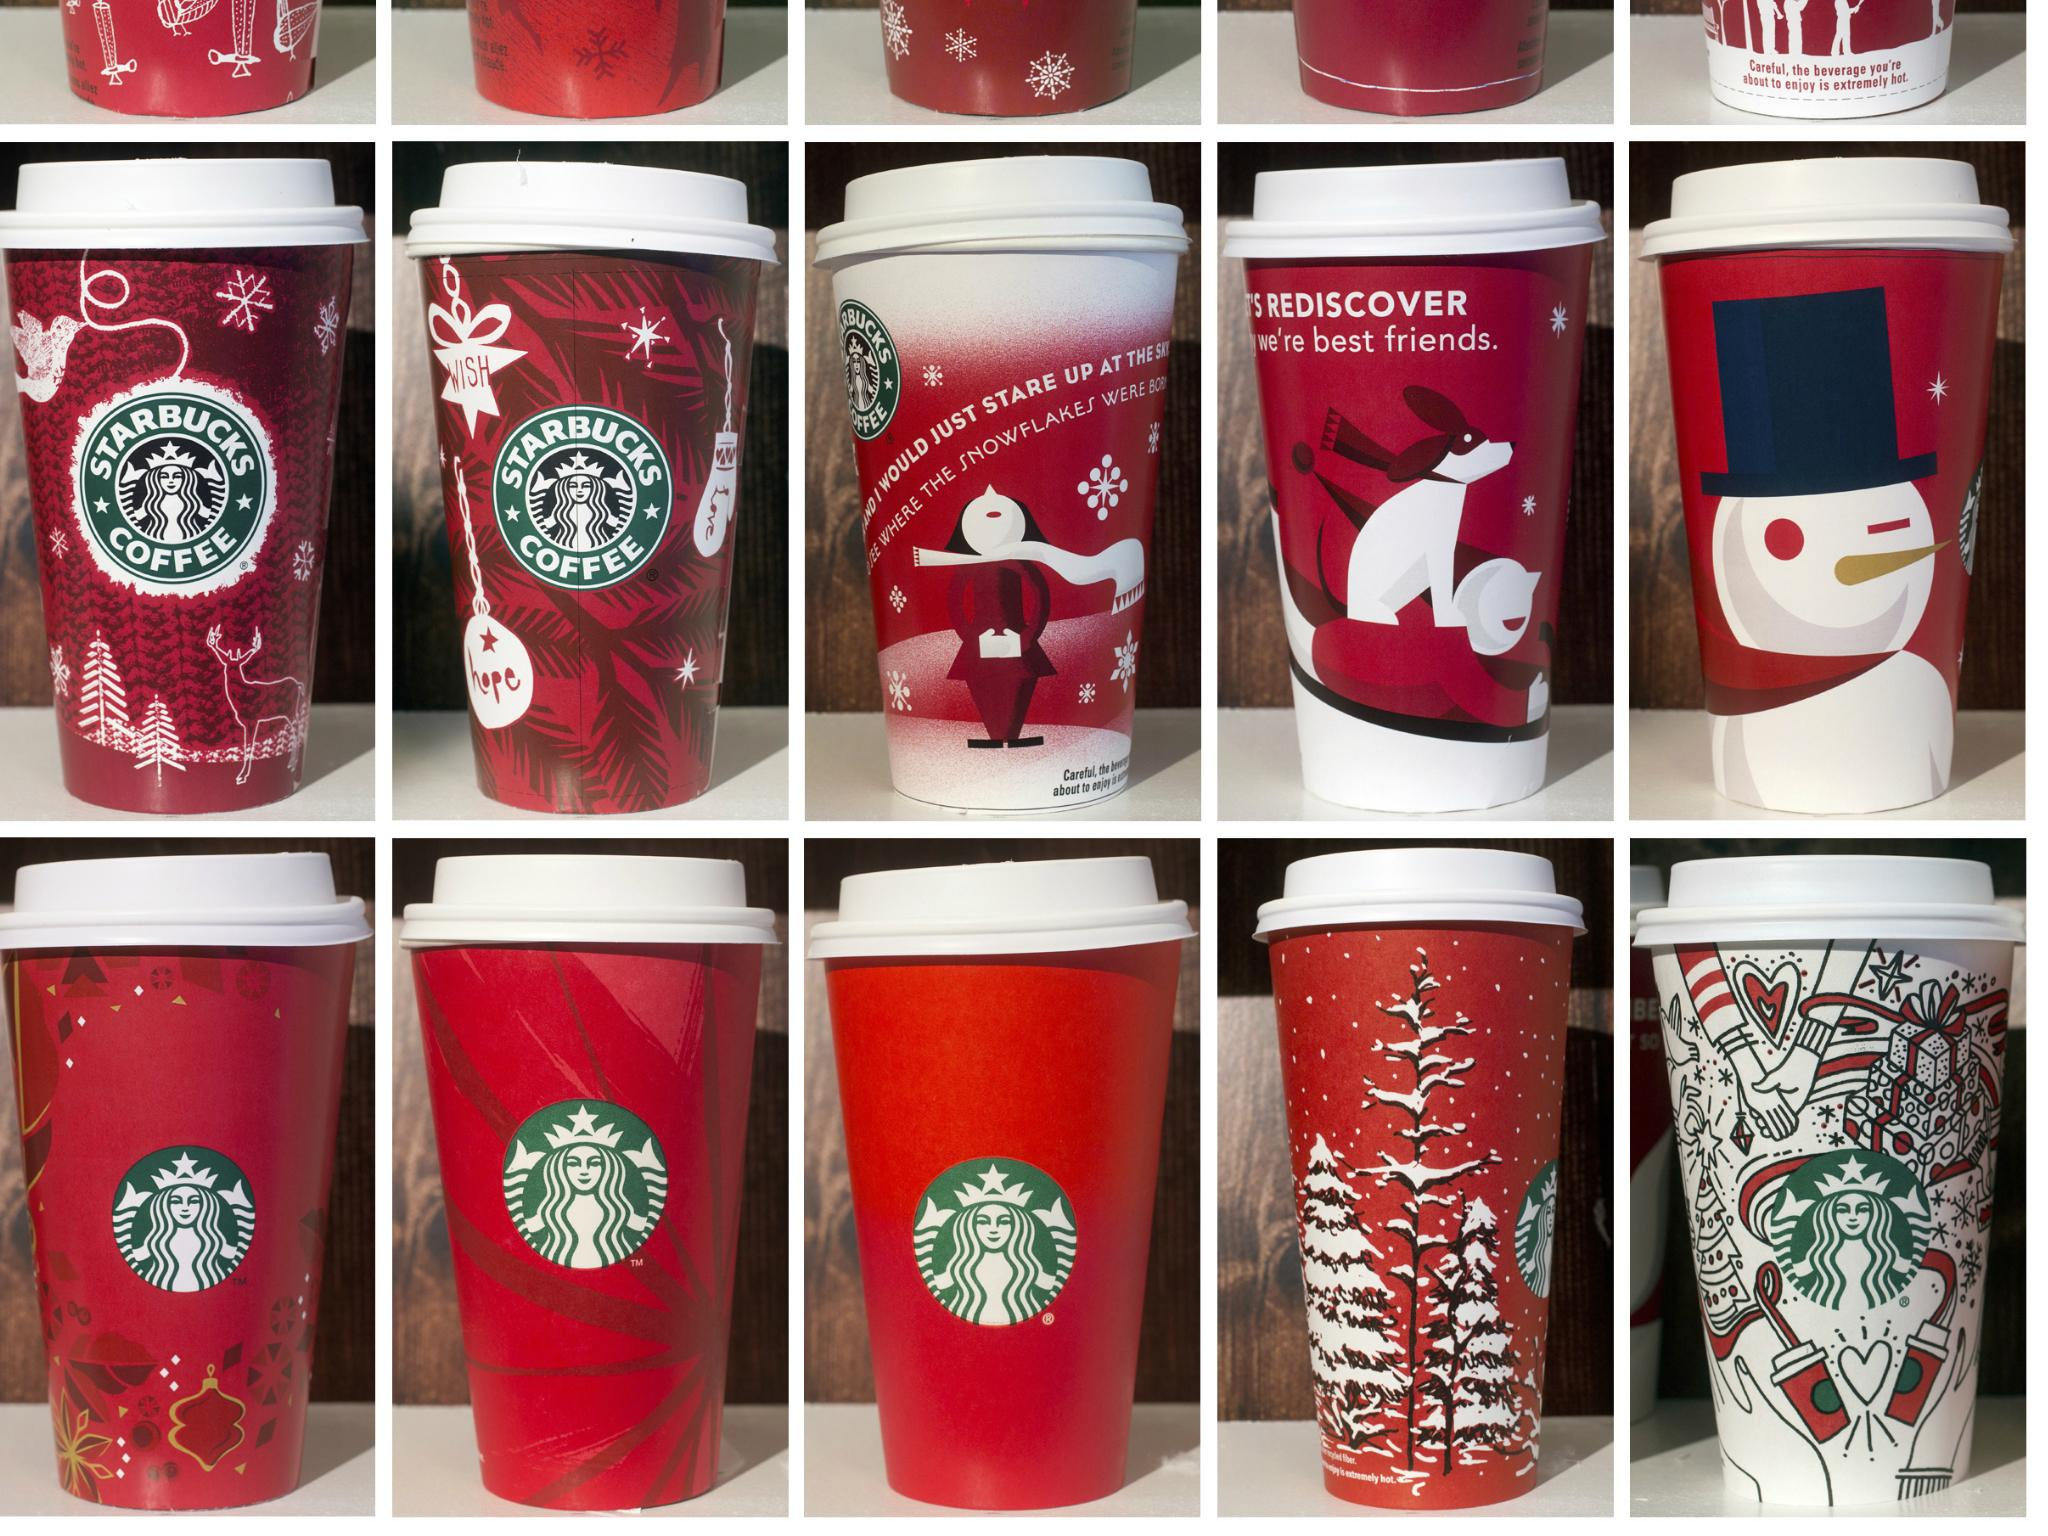 starbucks under fire over holiday cups that feature same sex couples hands the independent